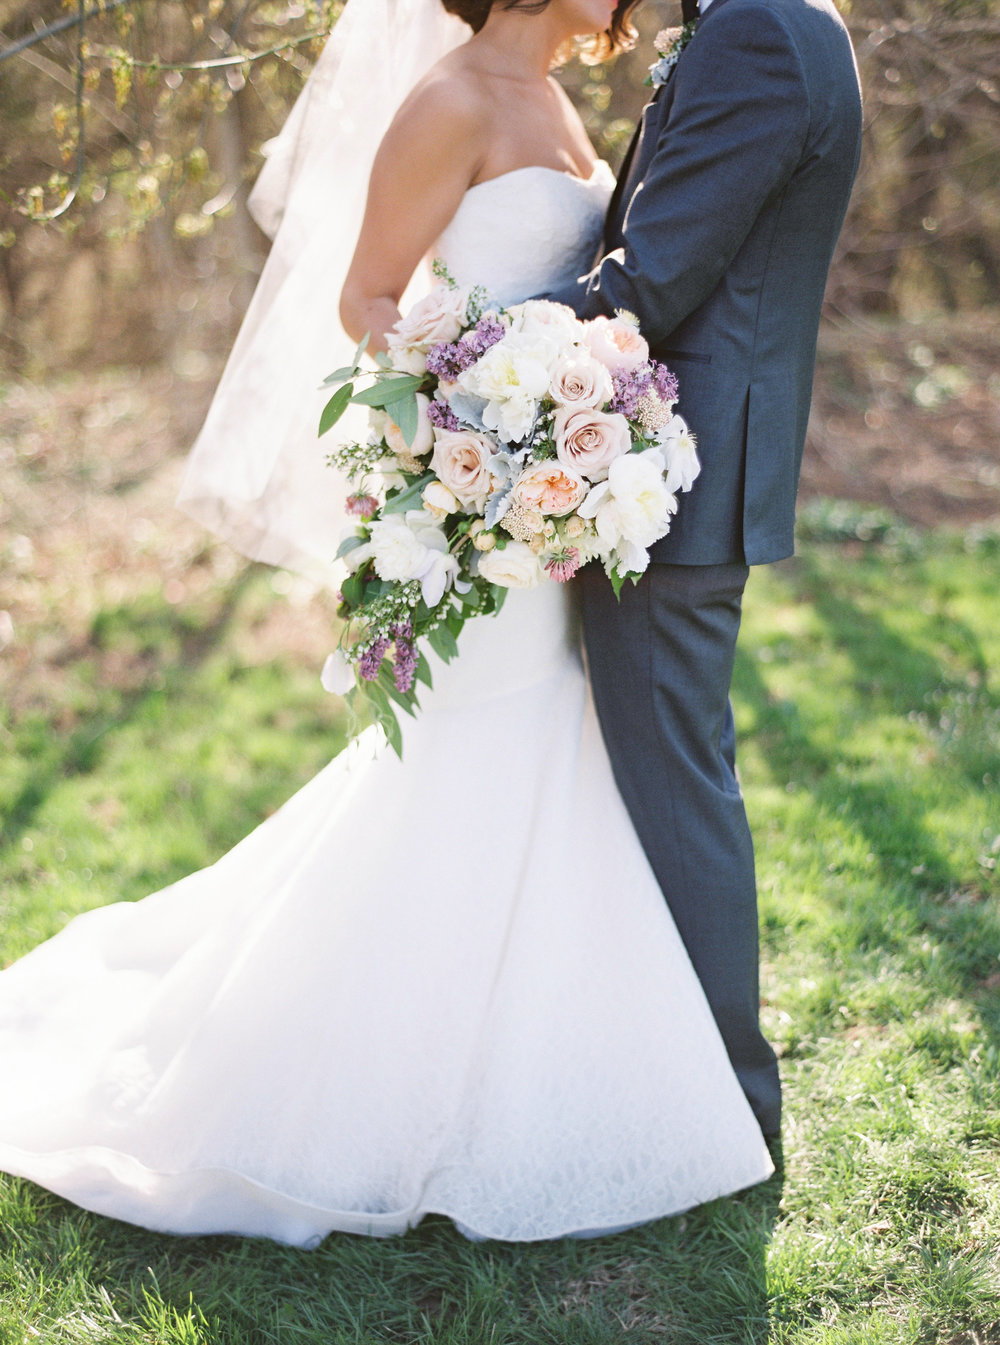 Riverside on the Potomac wedding with Wild Green Yonder Flowers | Amelia Johnson Photography | Roberts and Co. Events